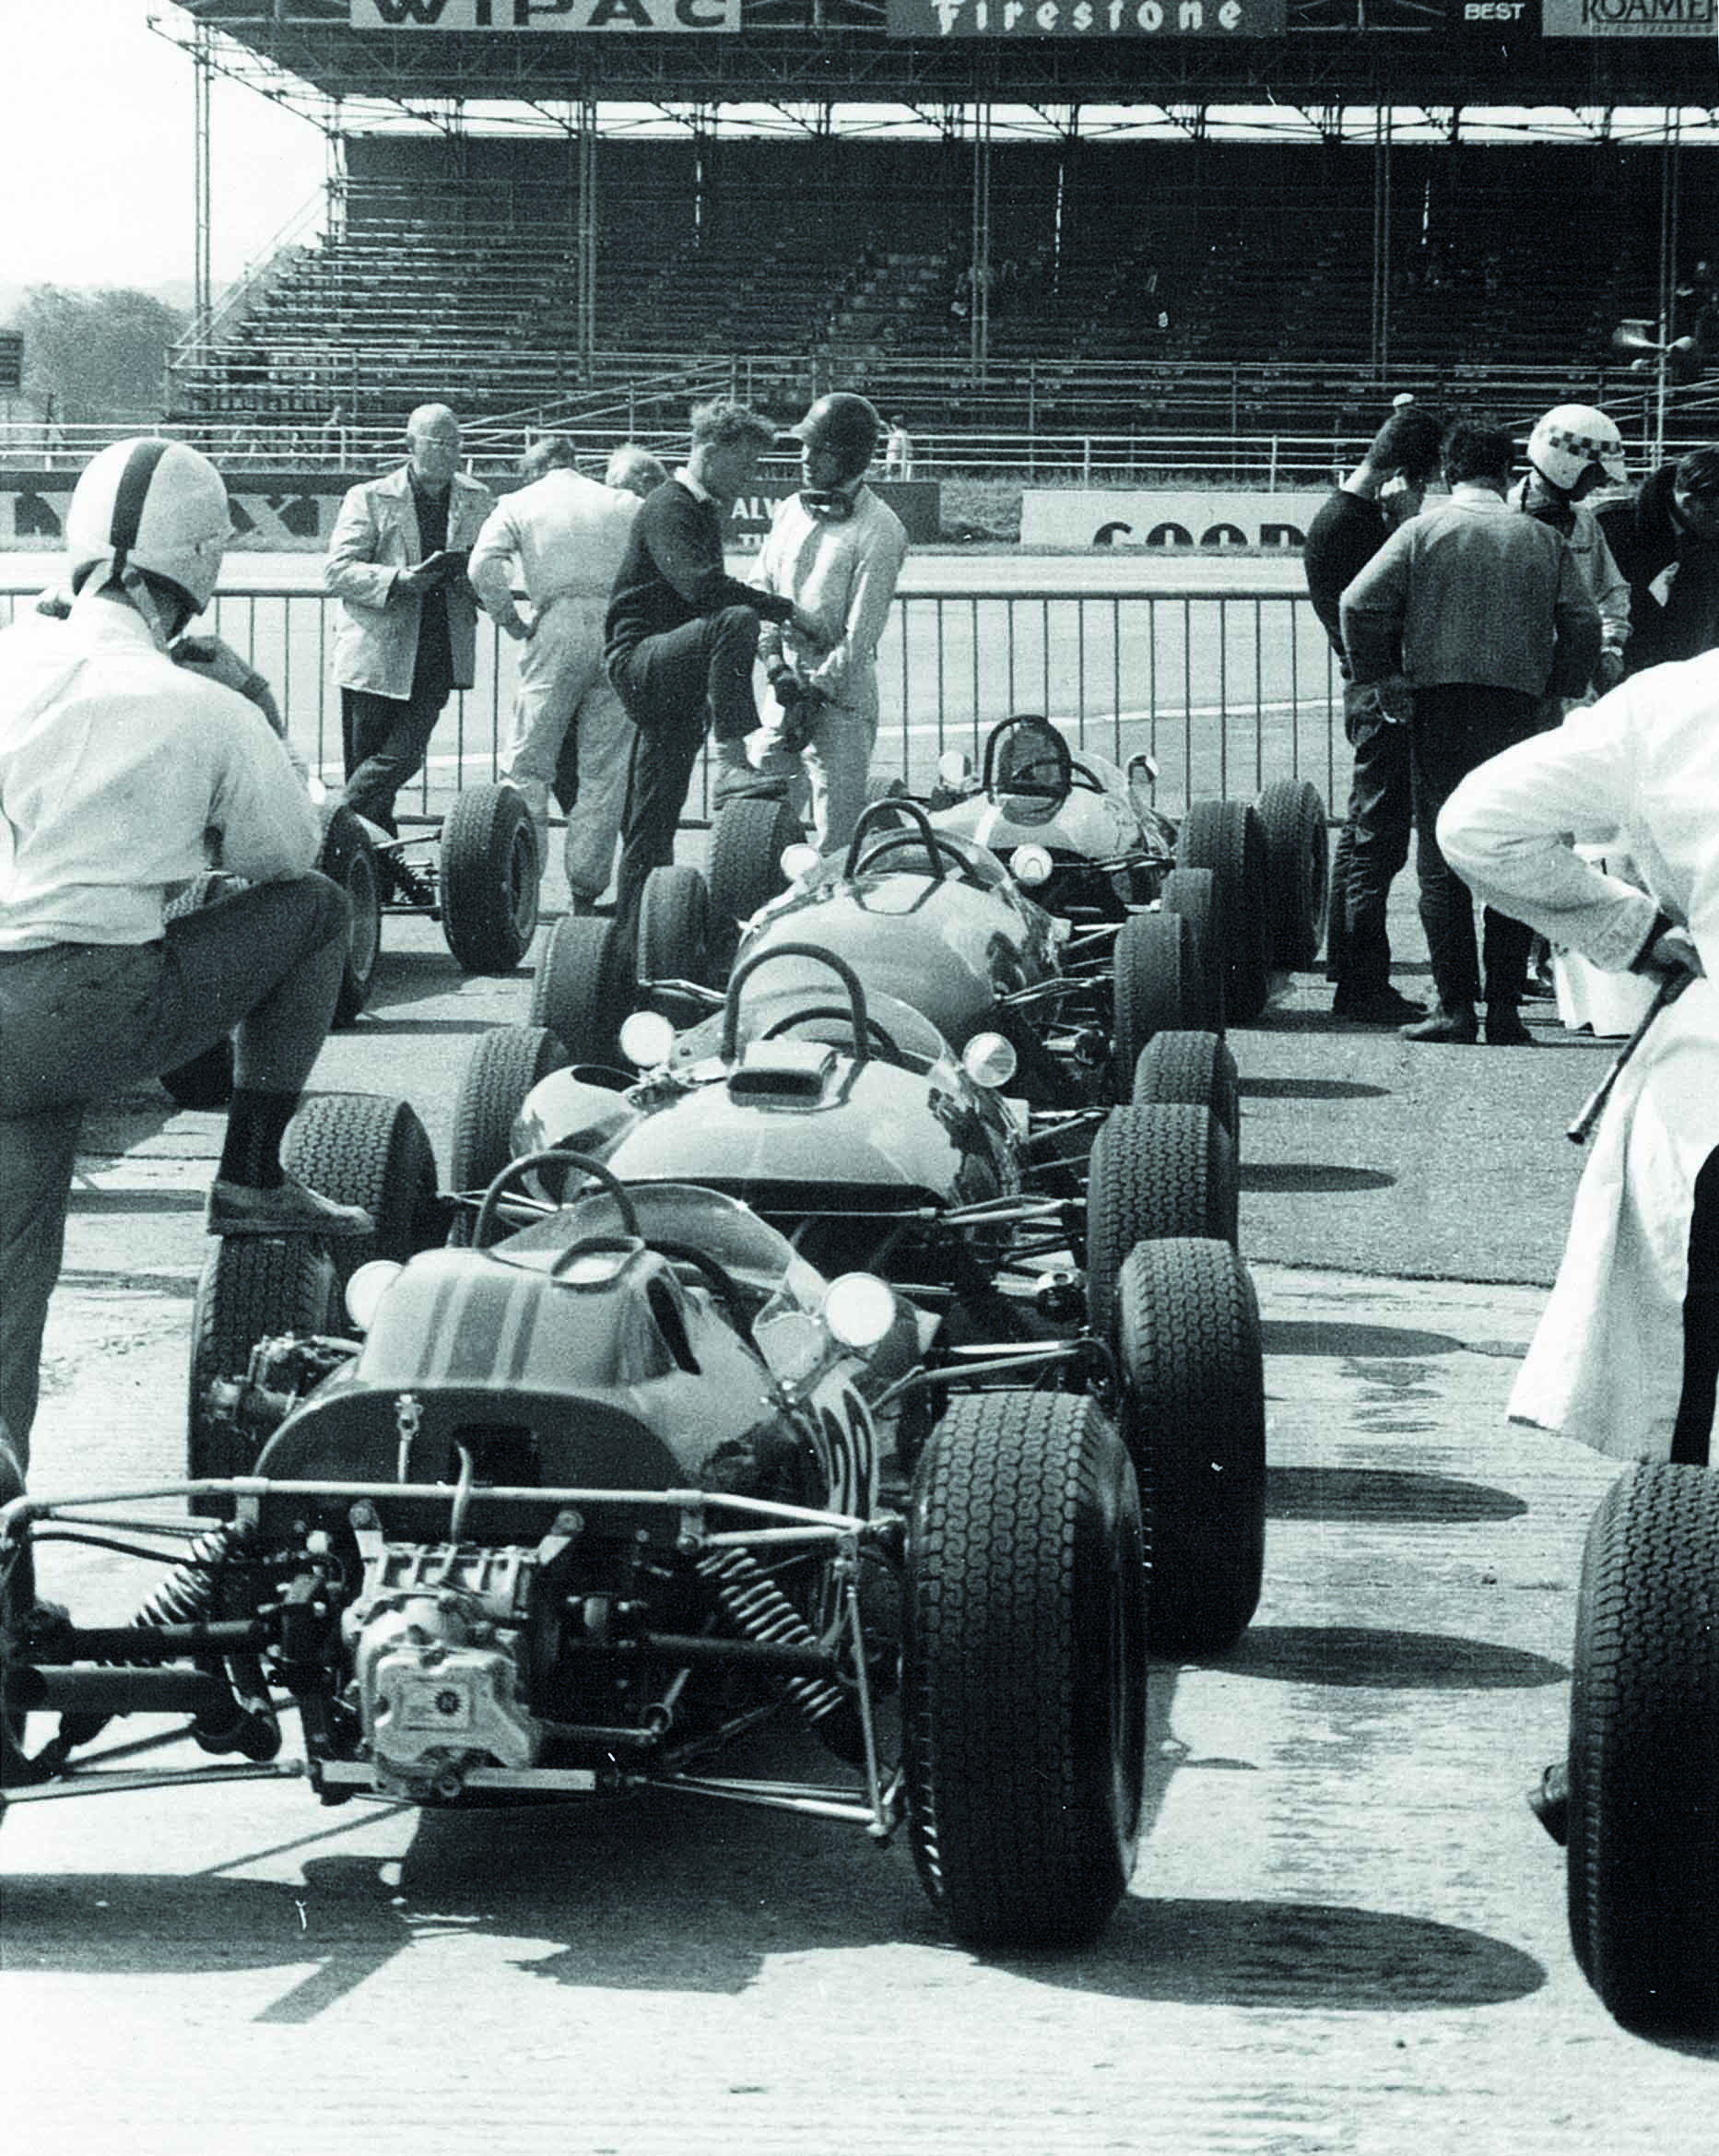 Cars line up for a 1960s Formula Junior race at Silverstone